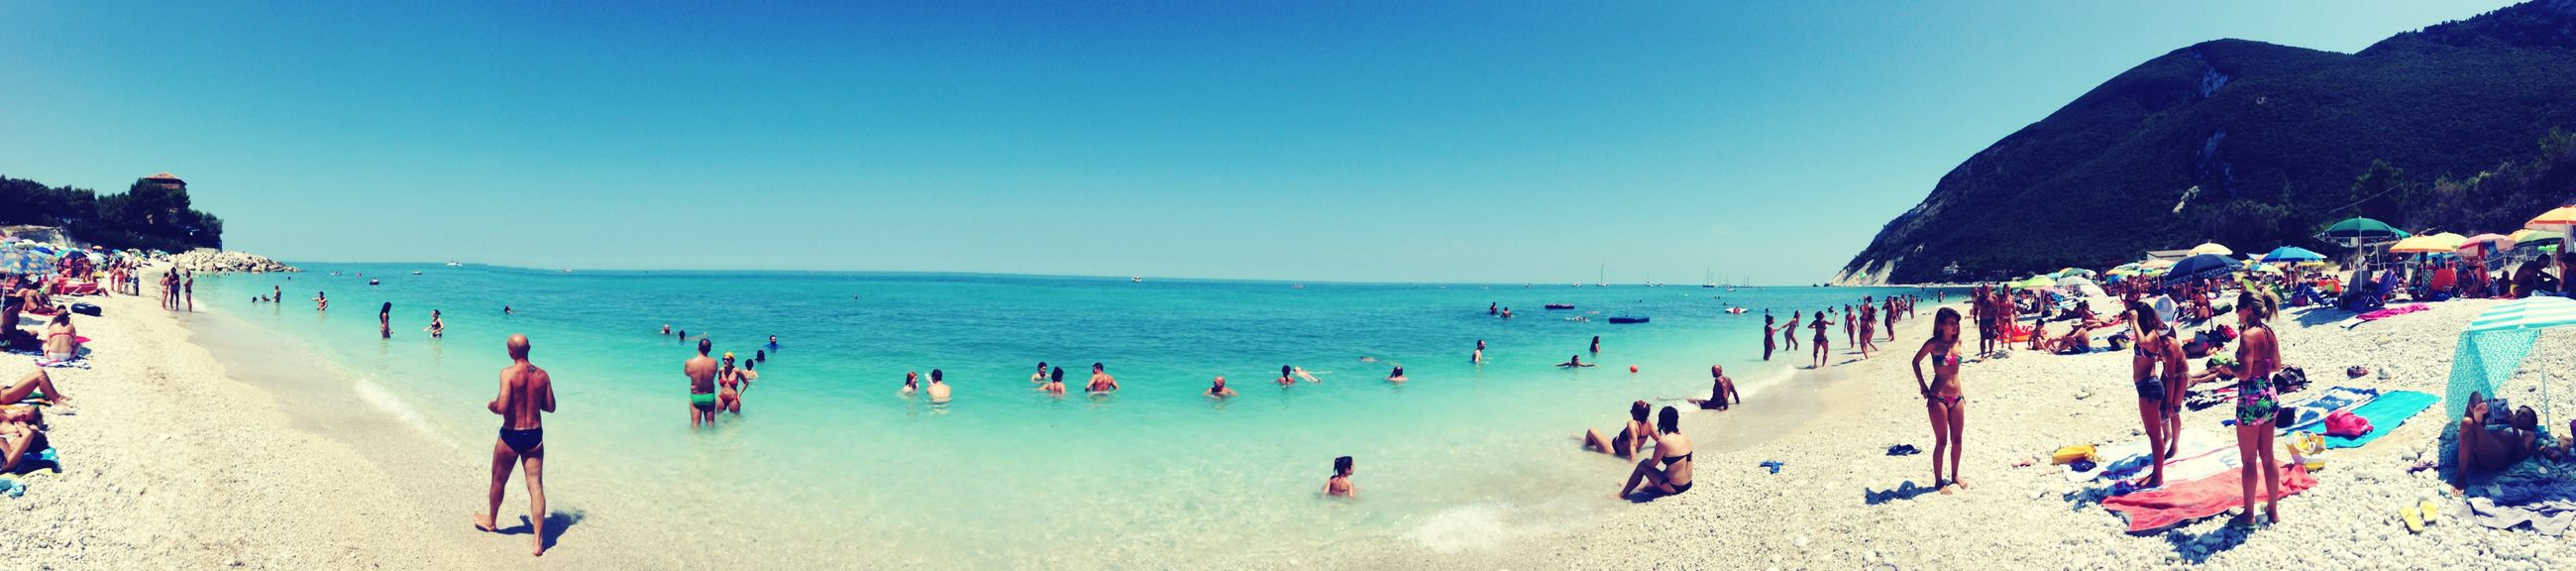 large group of people, sea, beach, water, clear sky, horizon over water, leisure activity, shore, vacations, person, blue, lifestyles, copy space, enjoyment, mixed age range, men, crowd, sand, summer